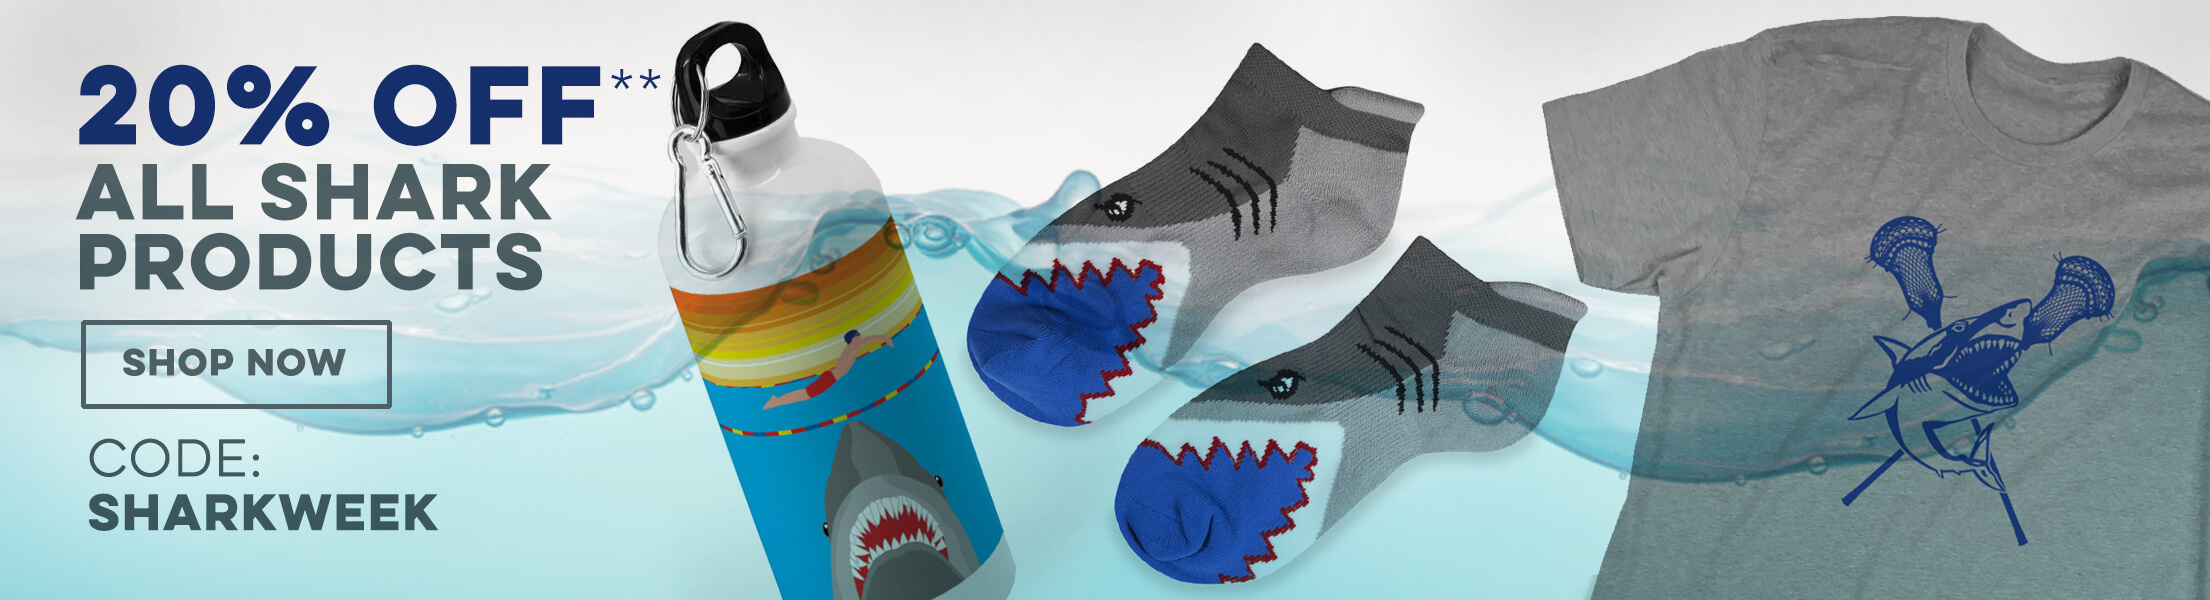 20% Off Shark Week Products